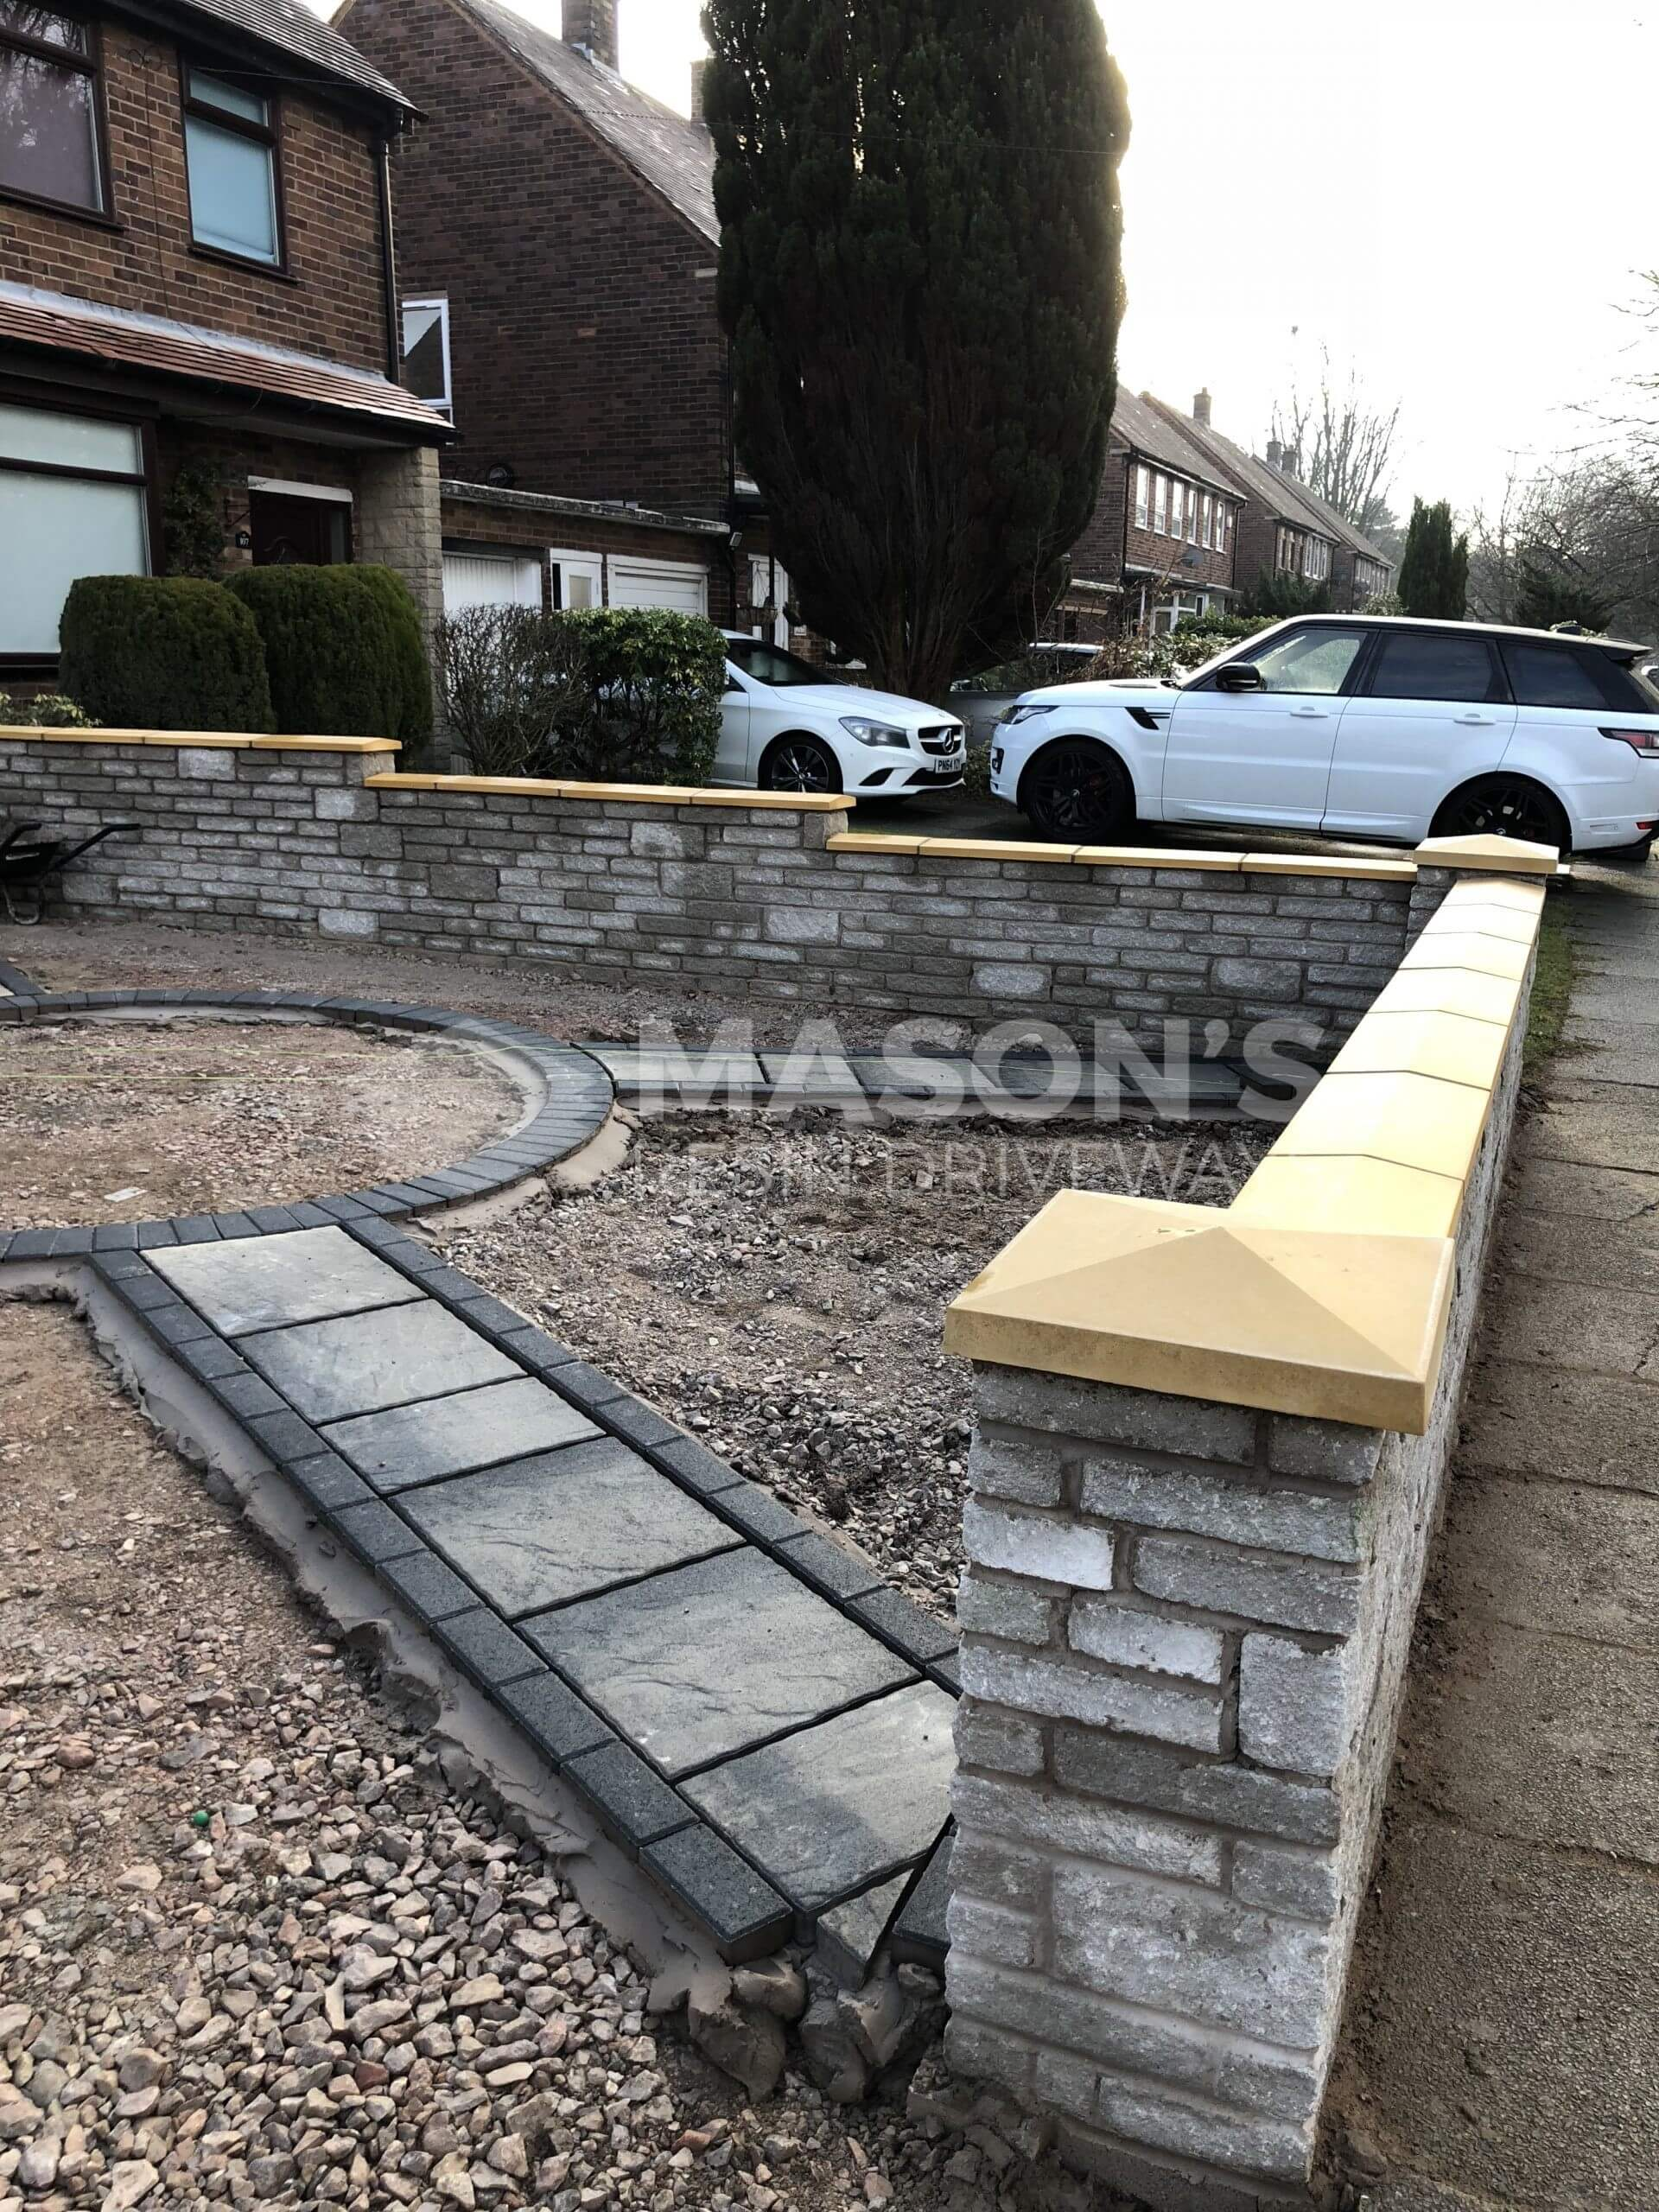 block paving and walling being done in leyland, near preston